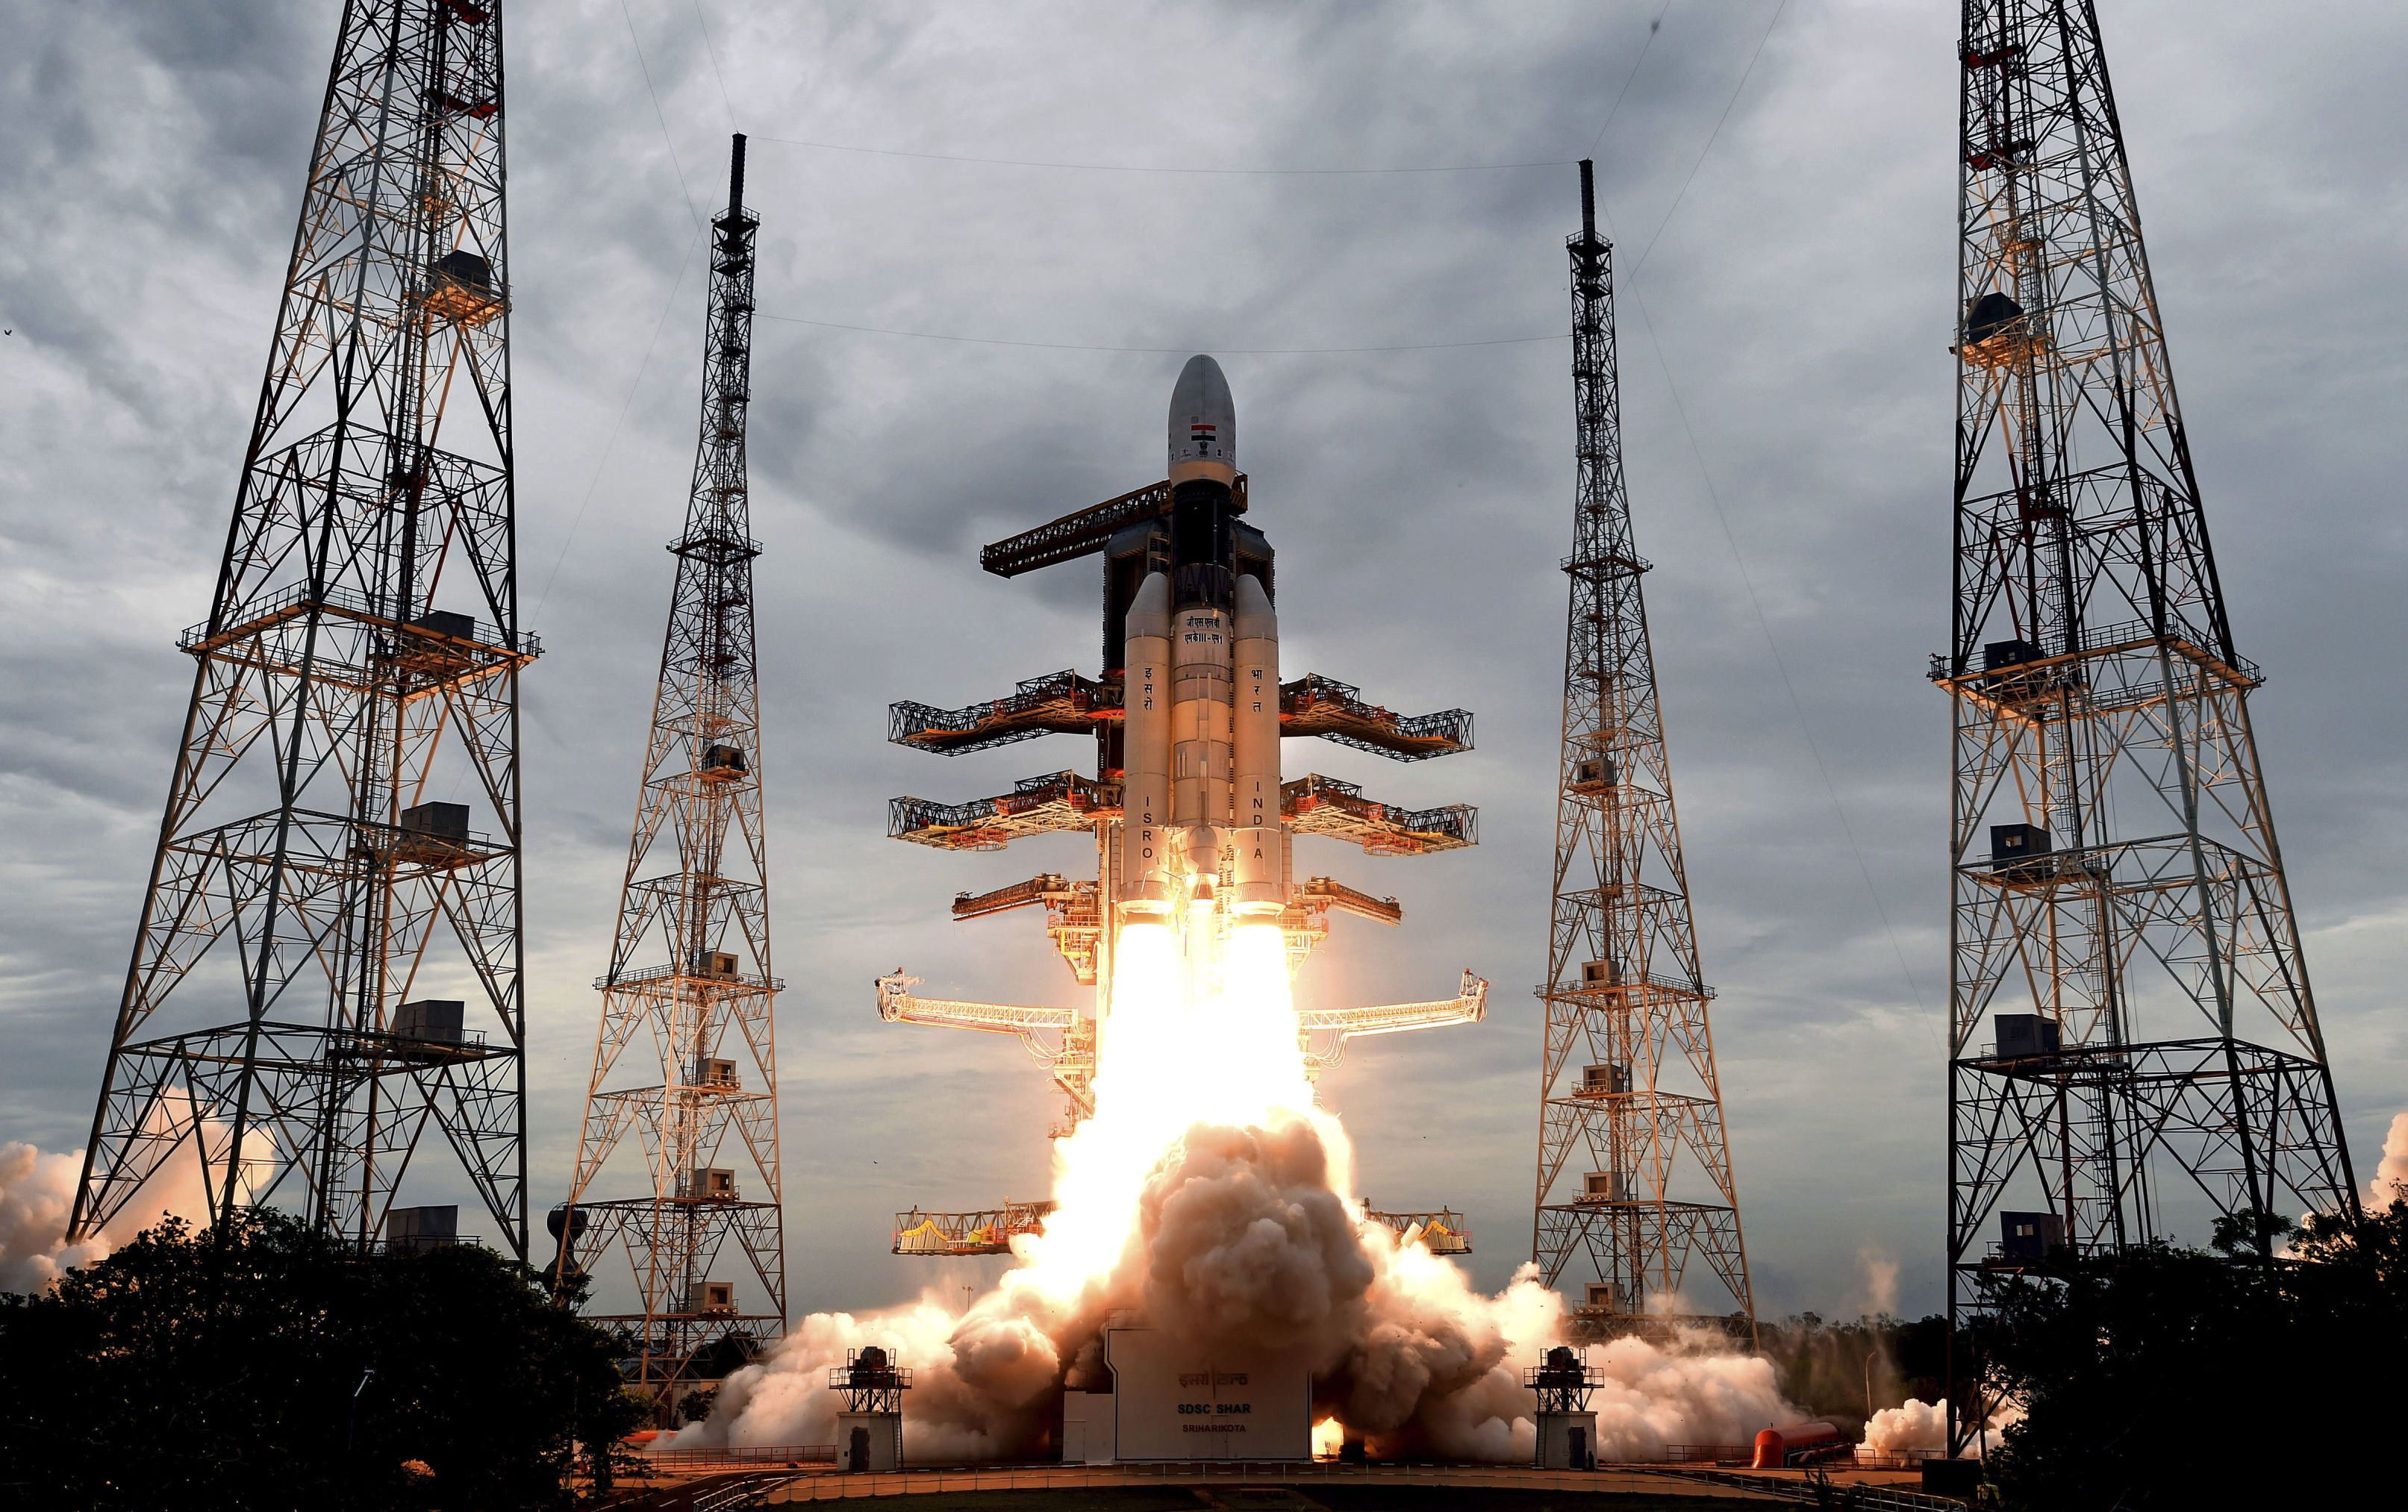 This photo released by the Indian Space Research Organization (ISRO) shows its Geosynchronous Satellite launch Vehicle (GSLV) MkIII carrying Chandrayaan-2 lift off from Satish Dhawan Space center in Sriharikota, India, Monday, July 22, 2019